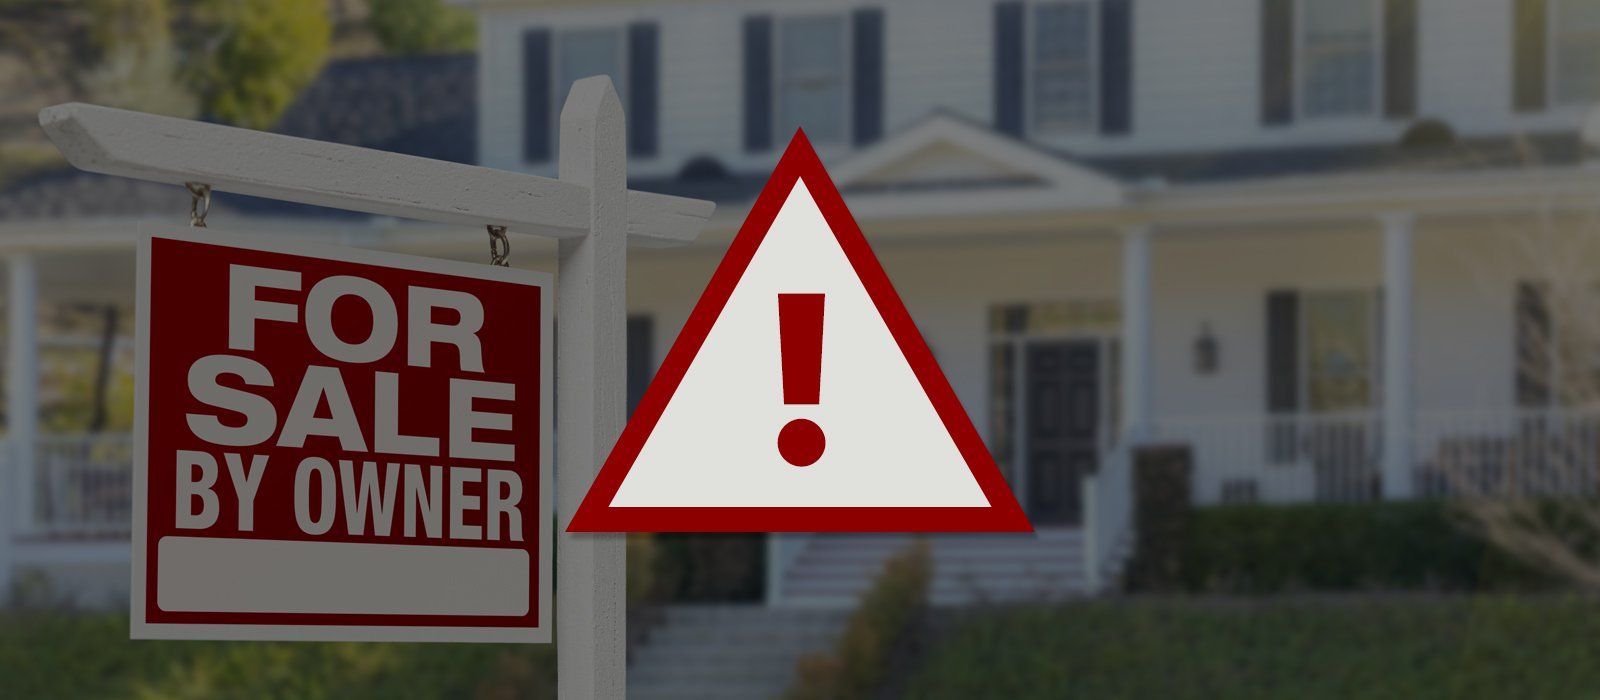 Dangers of selling for sale by owner